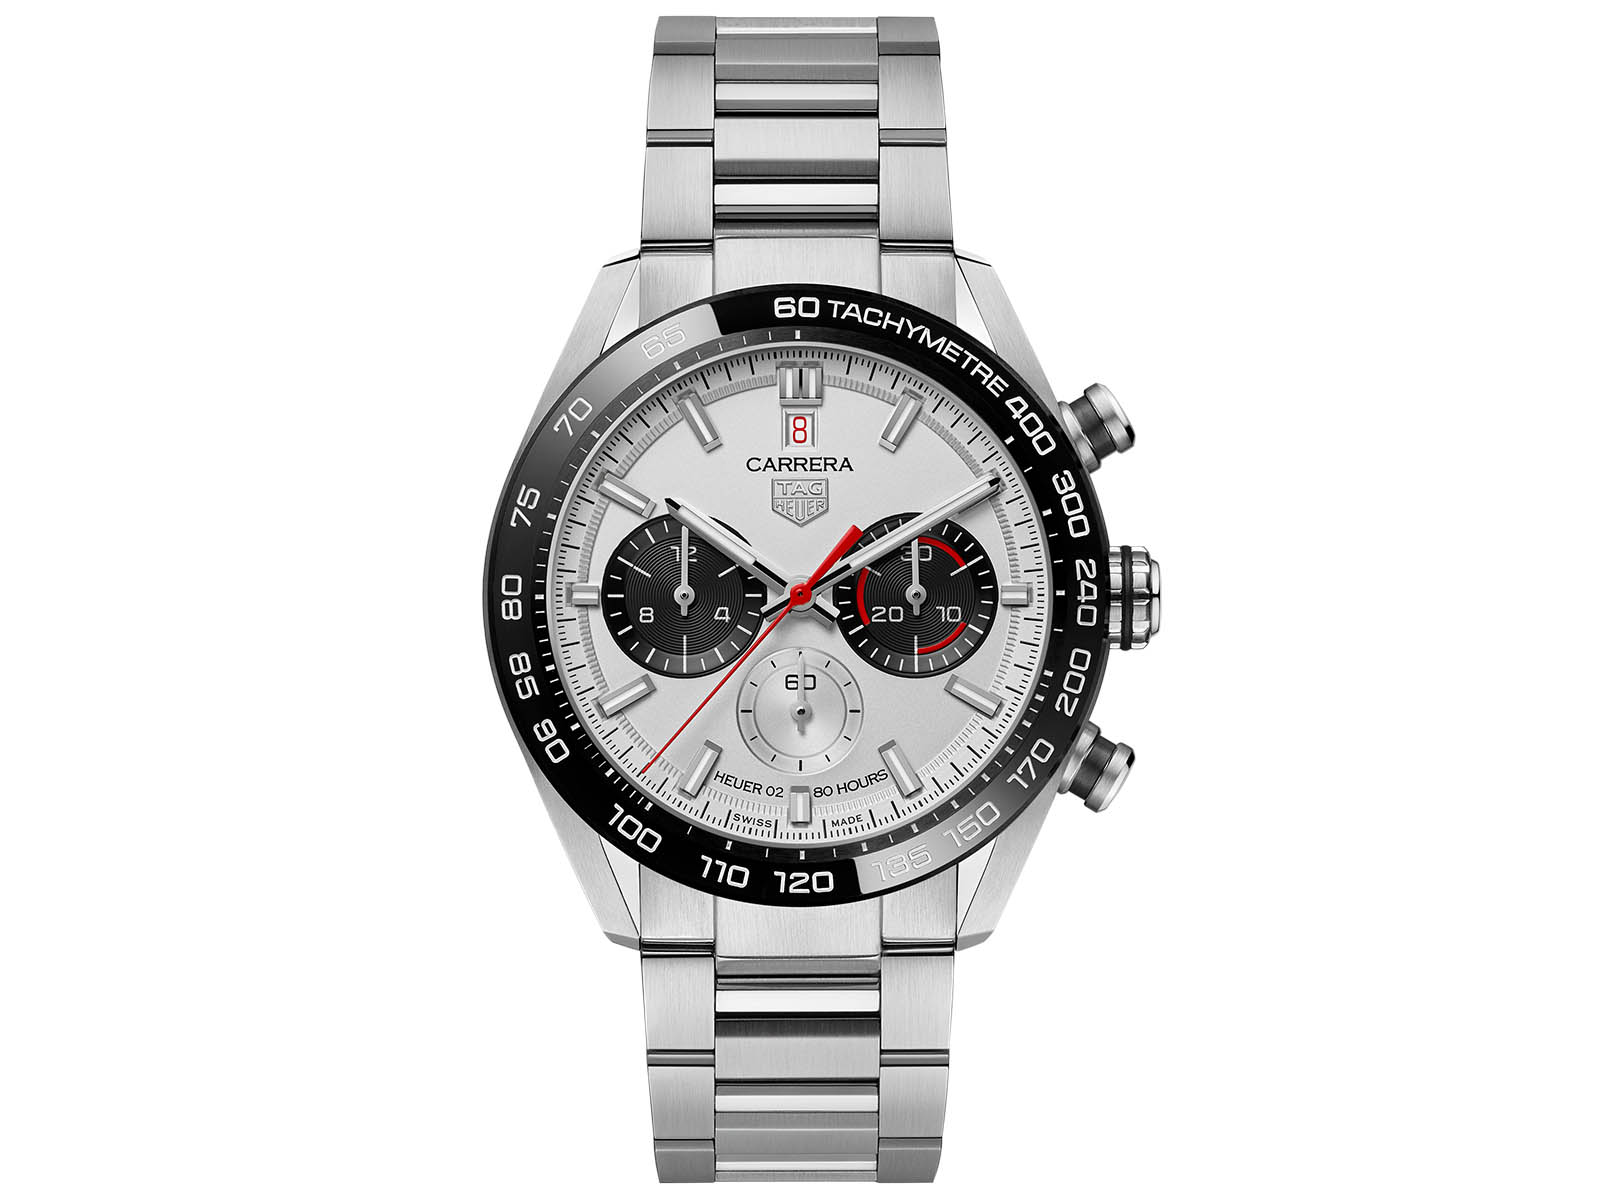 cbn2a1d-ba0643-tag-heuer-carrera-sport-chronograph-160-years-special-edition-5.jpg